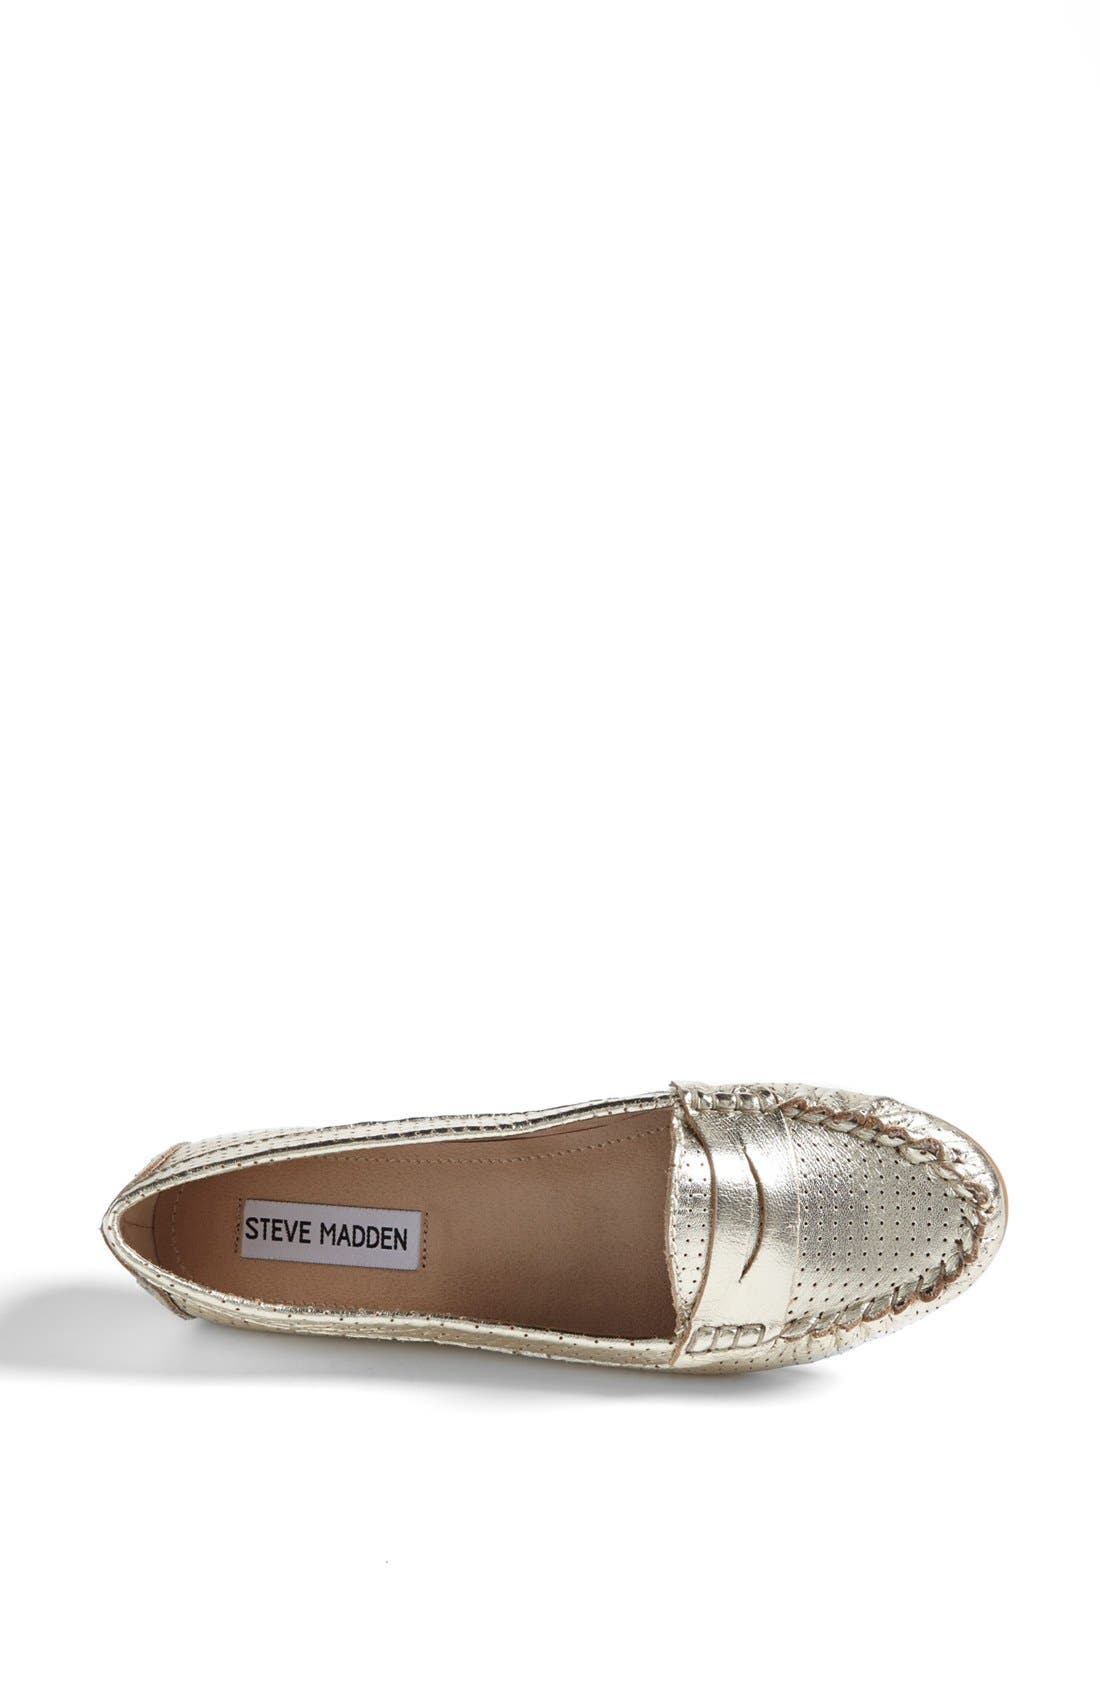 Alternate Image 3  - Steve Madden 'Murphey' Leather Flat